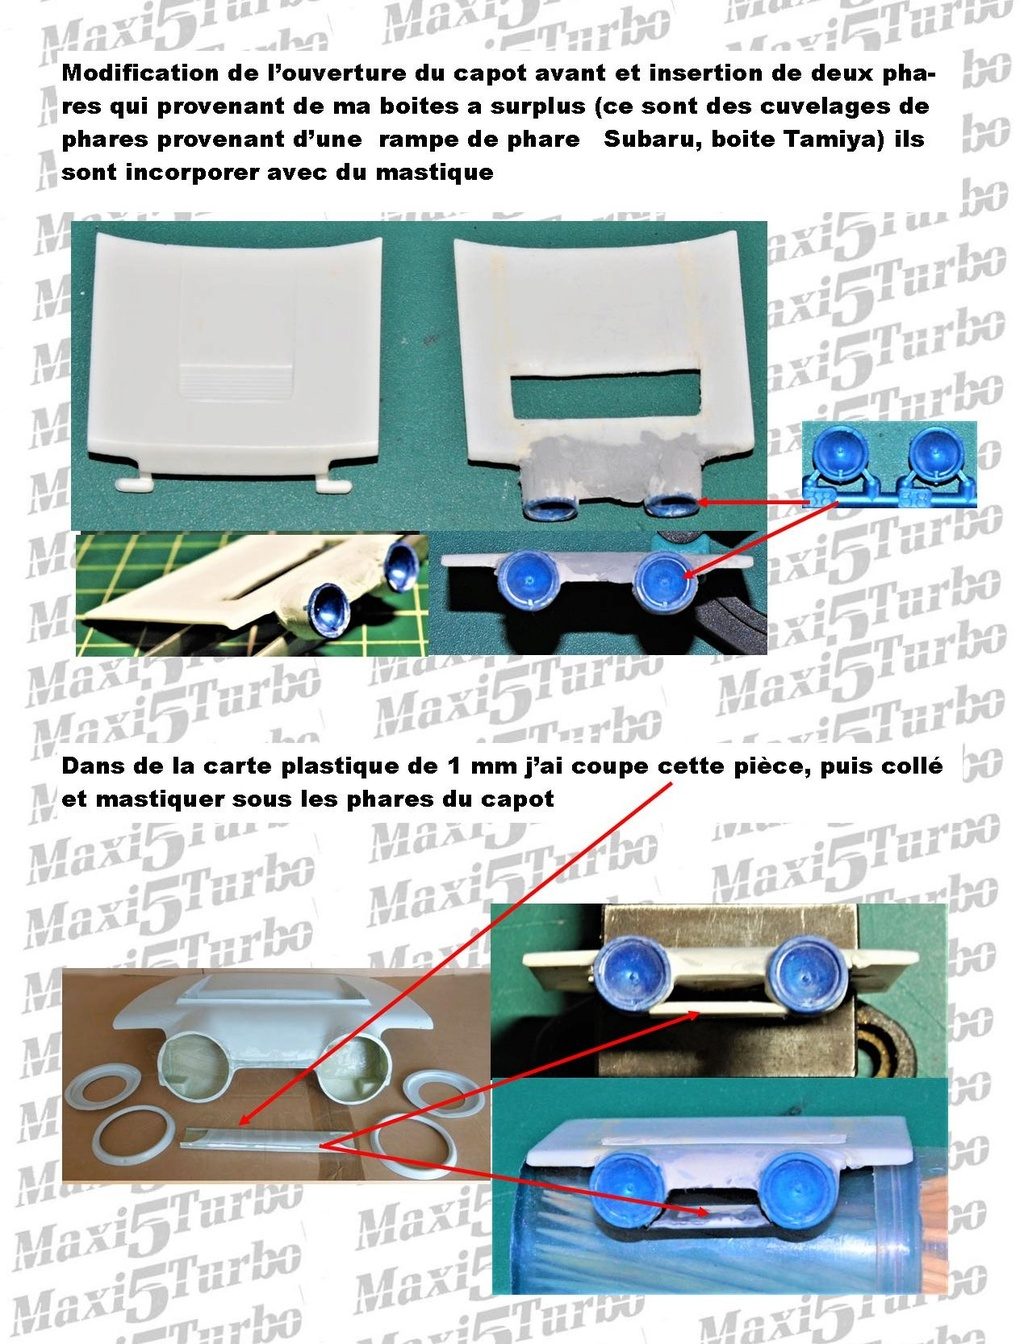 (1/24) Renault 5 Maxi turbo Ref 80717 ( Hors delai ) - Page 2 2213